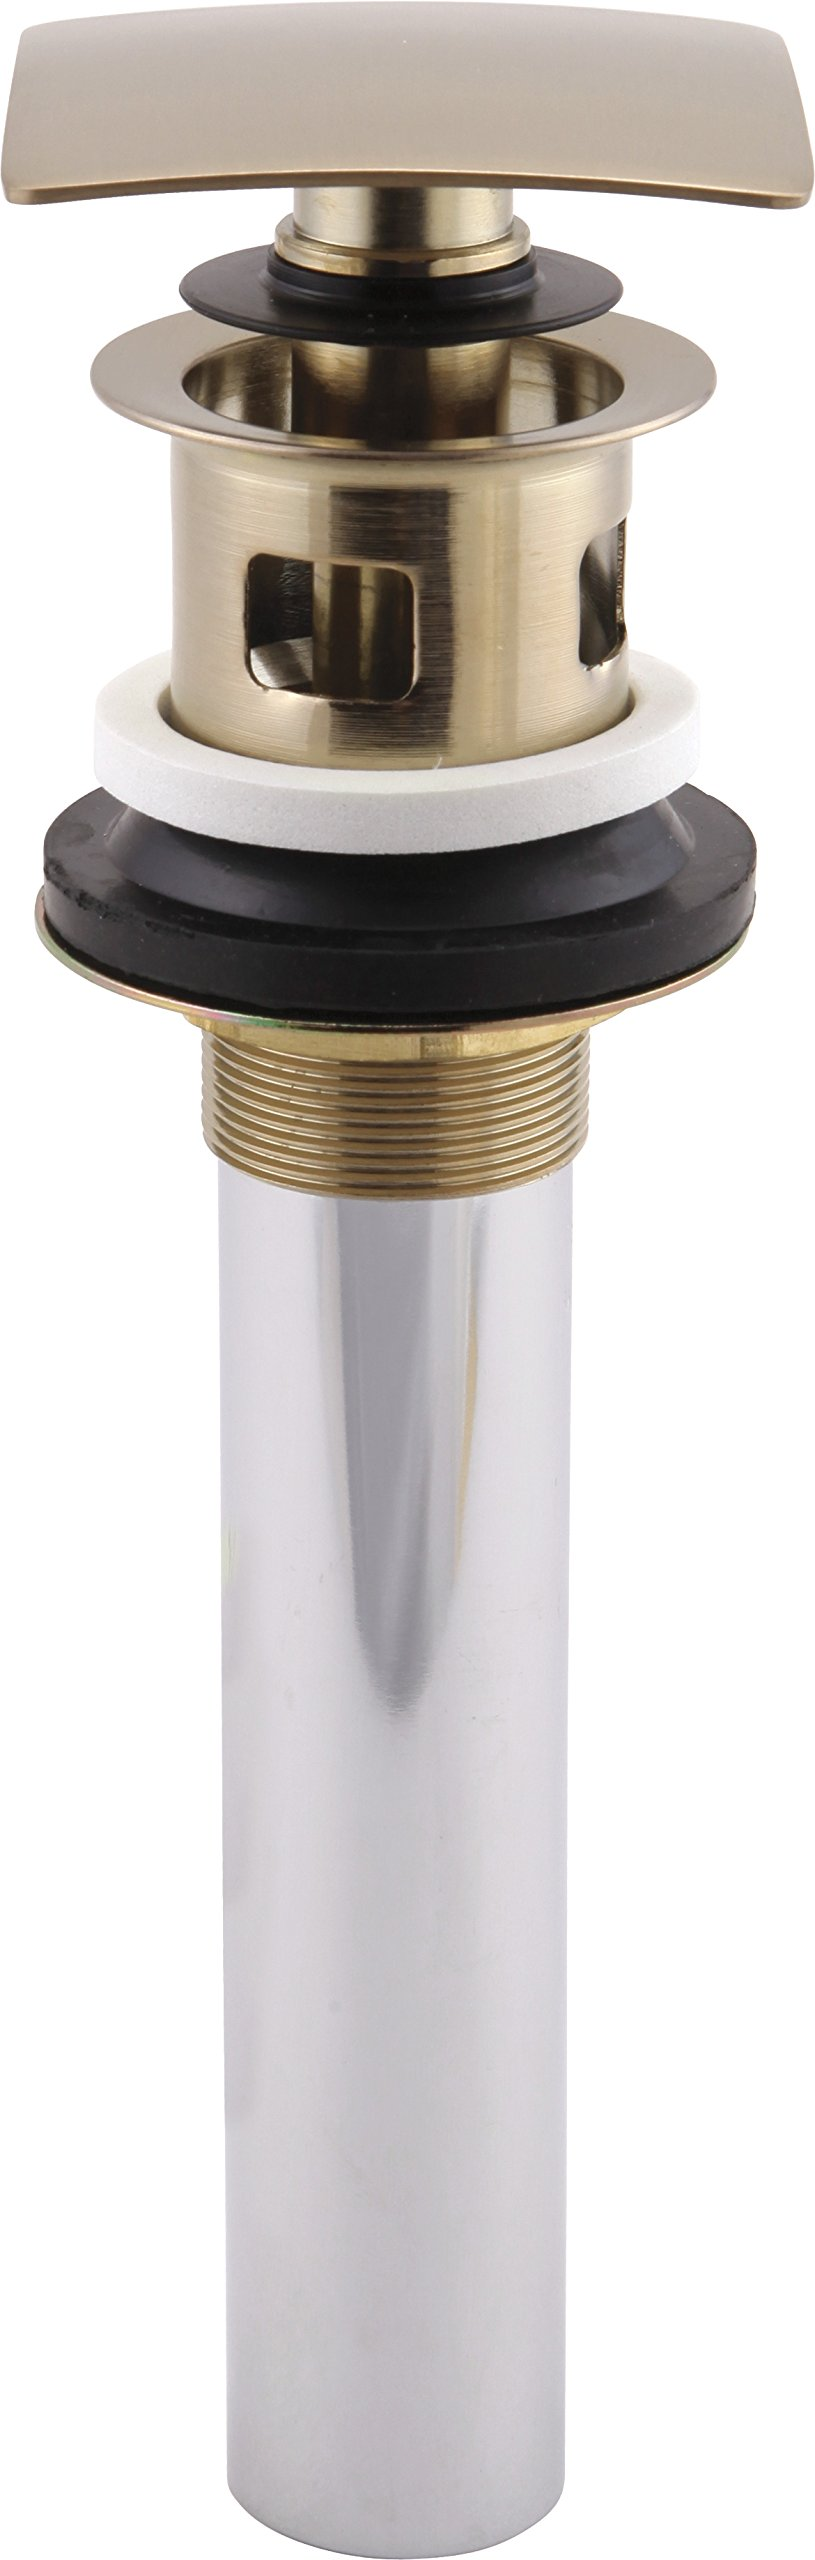 Delta 72175-CZ Square Push Pop-Up Bathroom Sink Drain with Overflow, Champagne Bronze